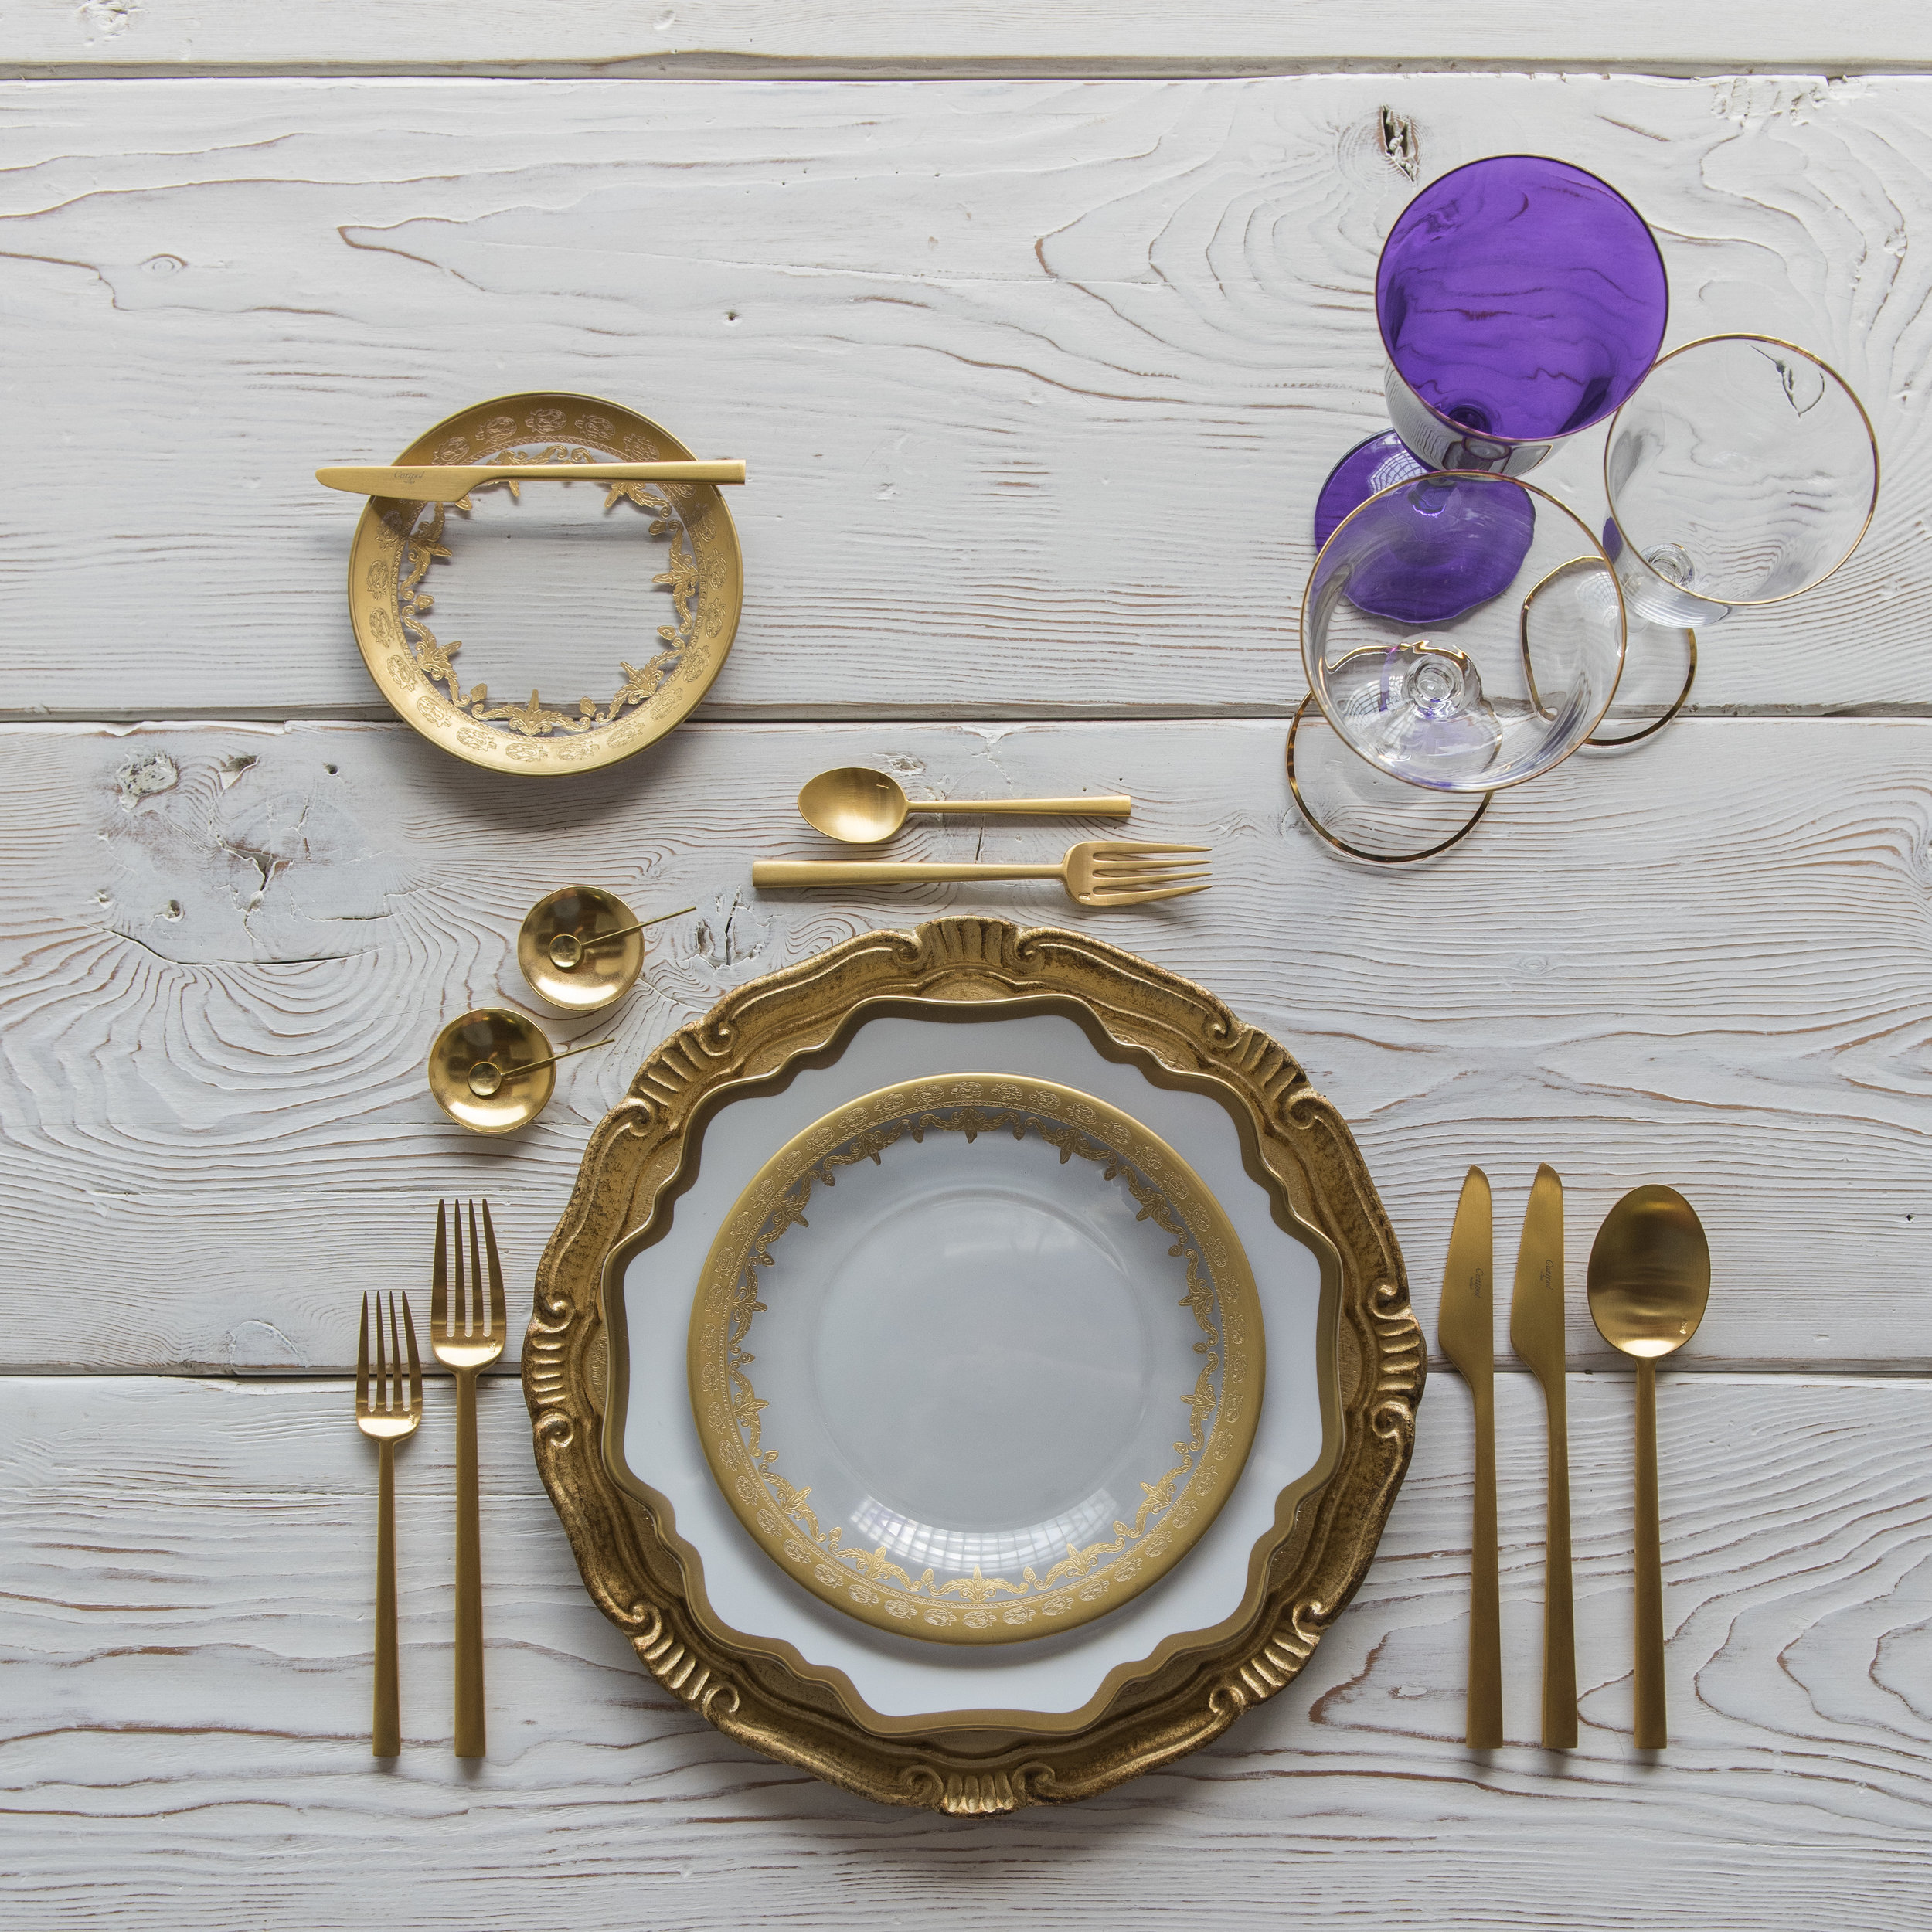 RENT: Florentine Chargers in Gold + Anna Weatherley Dinnerware in White/Gold + Versailles Glass Dinnerware in 24k Gold + Rondo Flatware in Brushed 24k Gold + Chloe 24k Gold Rimmed Stemware + Chloe 24k Gold Rimmed Goblet in Purple + 14k Gold Salt Cellars + Tiny Gold Spoons  SHOP:Florentine Chargers in Gold +Anna Weatherley Dinnerware in White/Gold +Rondo Flatware in Brushed 24k Gold + Chloe 24k Gold Rimmed Stemware + 14k Gold Salt Cellars + Tiny Gold Spoons